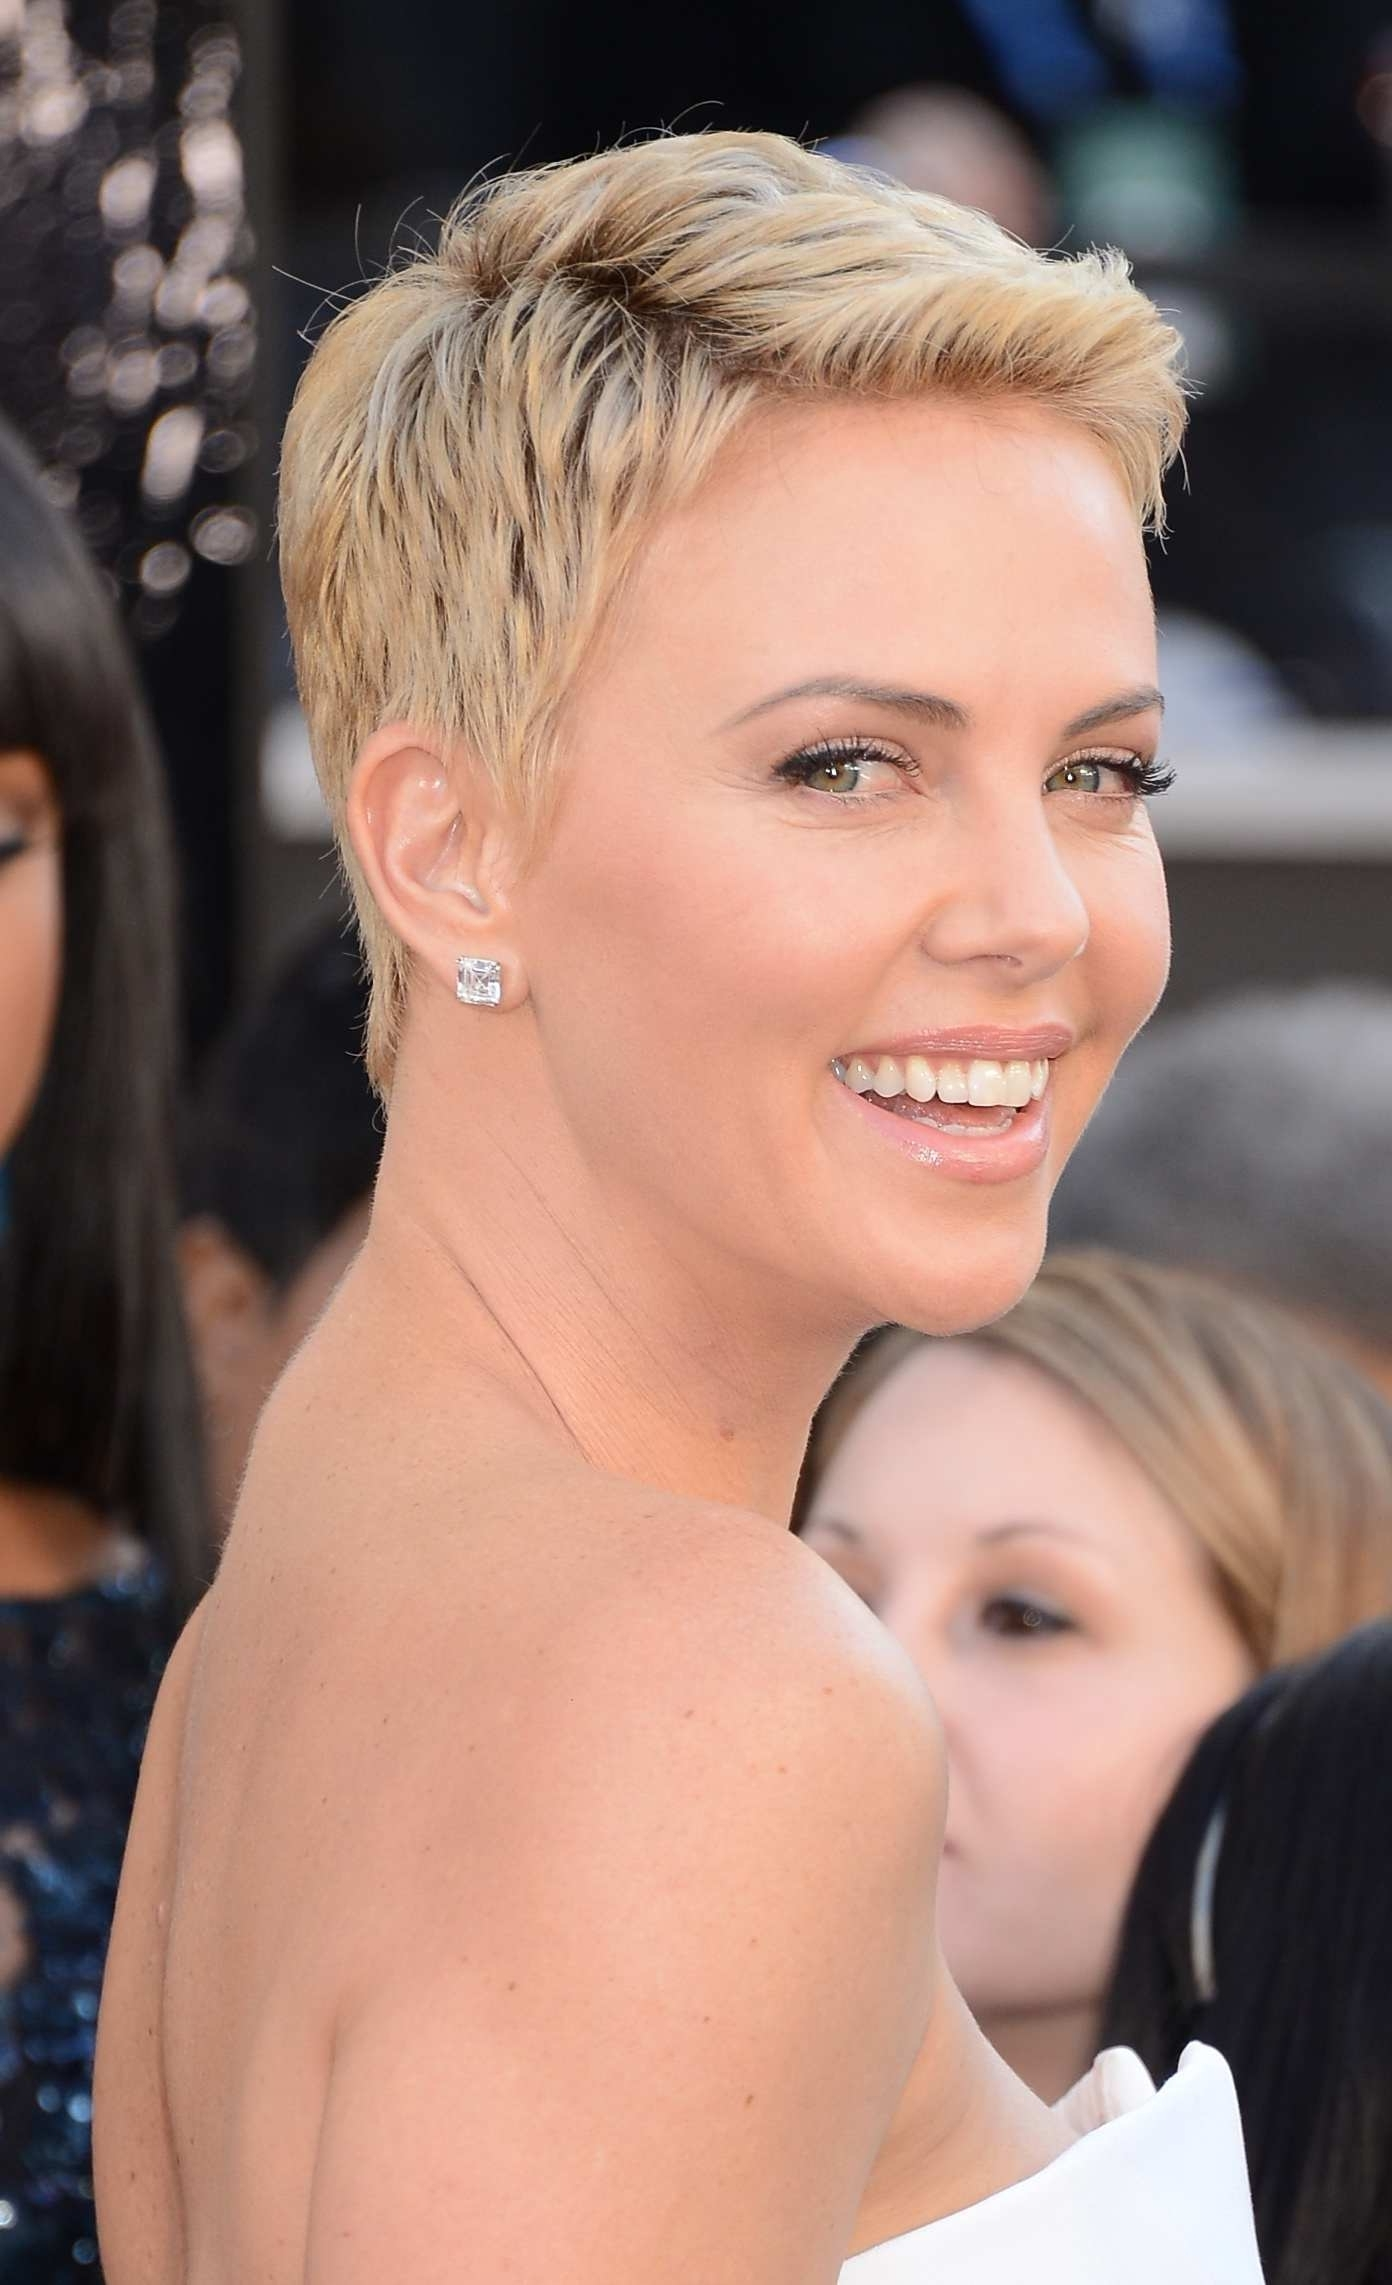 Awesome Short Pixie Haircuts For Fine Thin Hair | Celebrity Short In Newest Pixie Hairstyles For Thin Fine Hair (View 7 of 15)